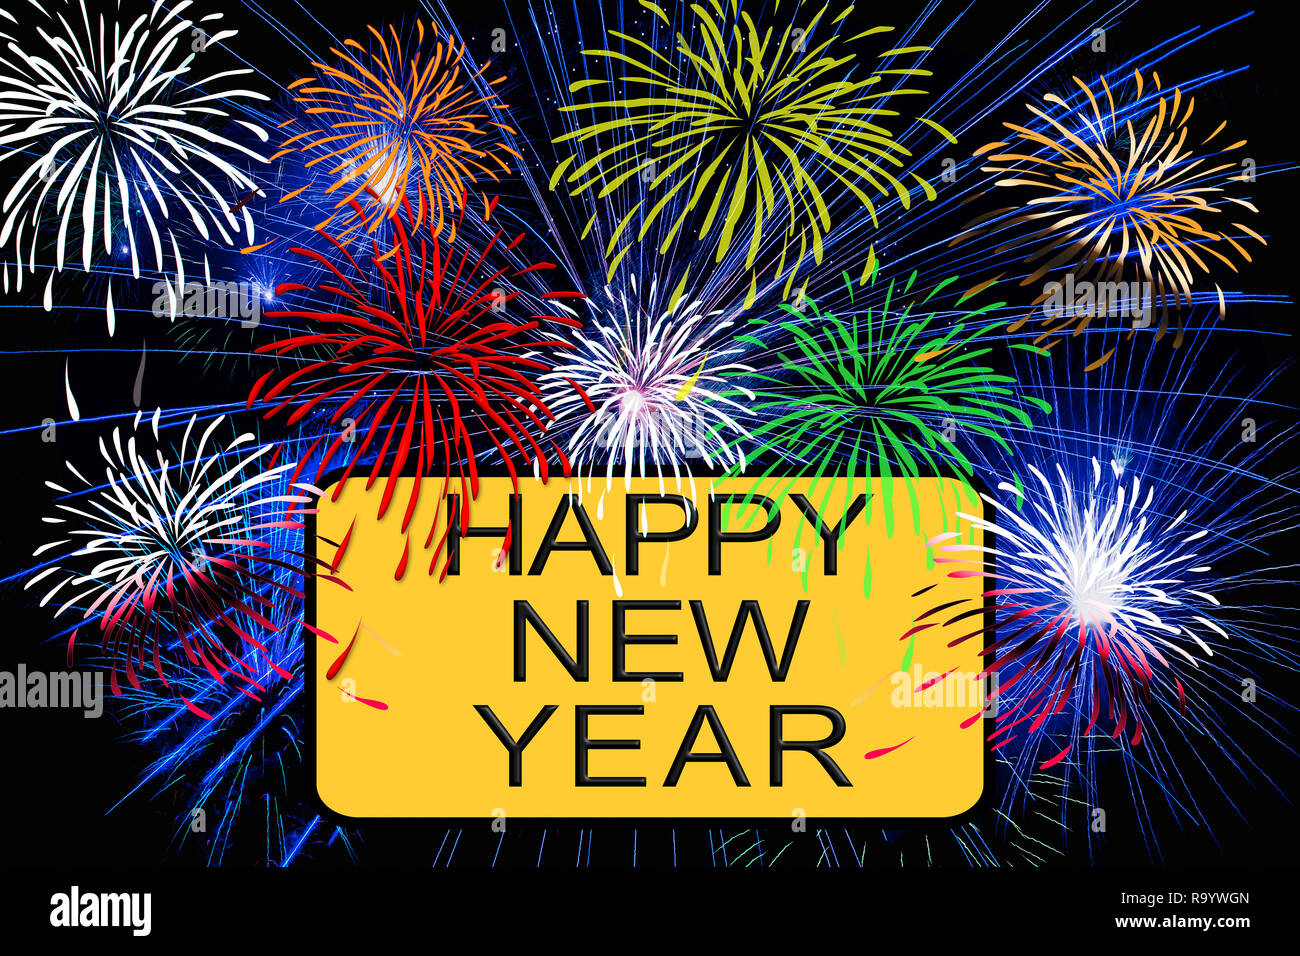 Happy new year text on yellow sign with fireworks in the night sky - Stock Image